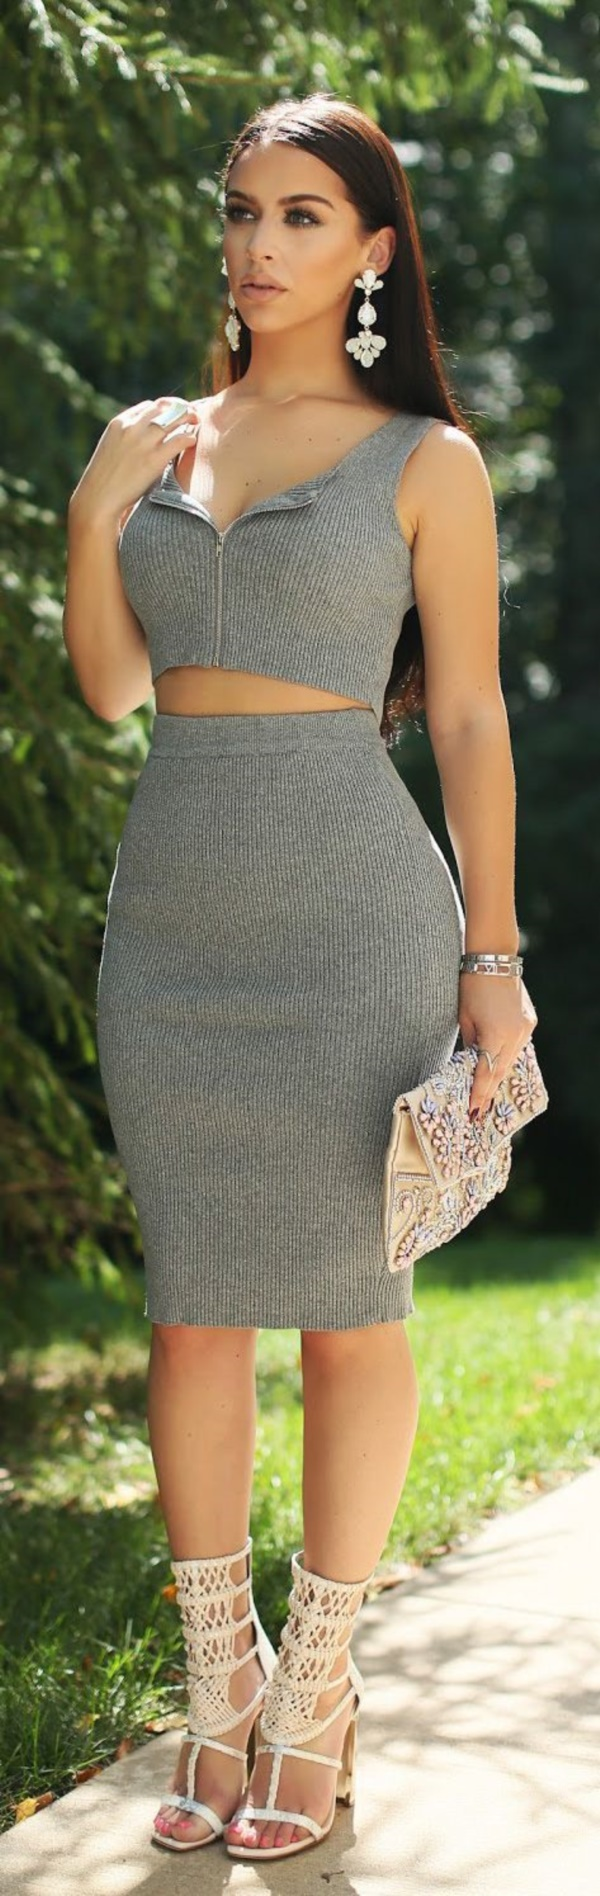 grey skirt outfit (46)